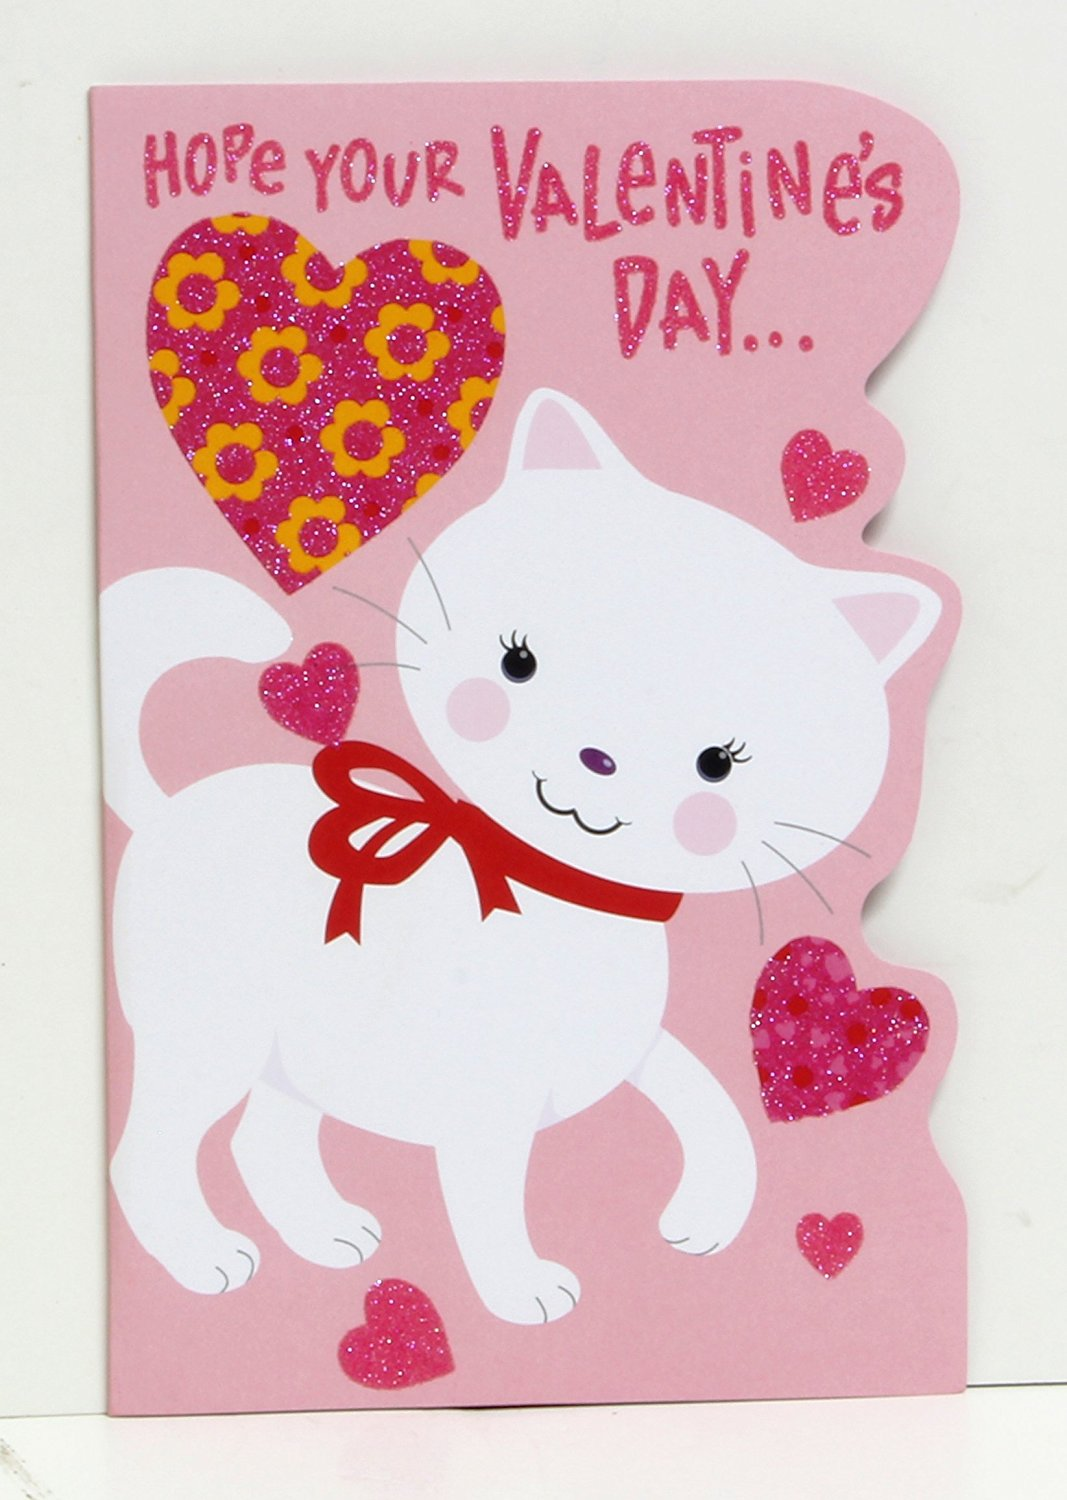 Buy Valentine Card Funny For A Girl Hope Your Valentines Day Is